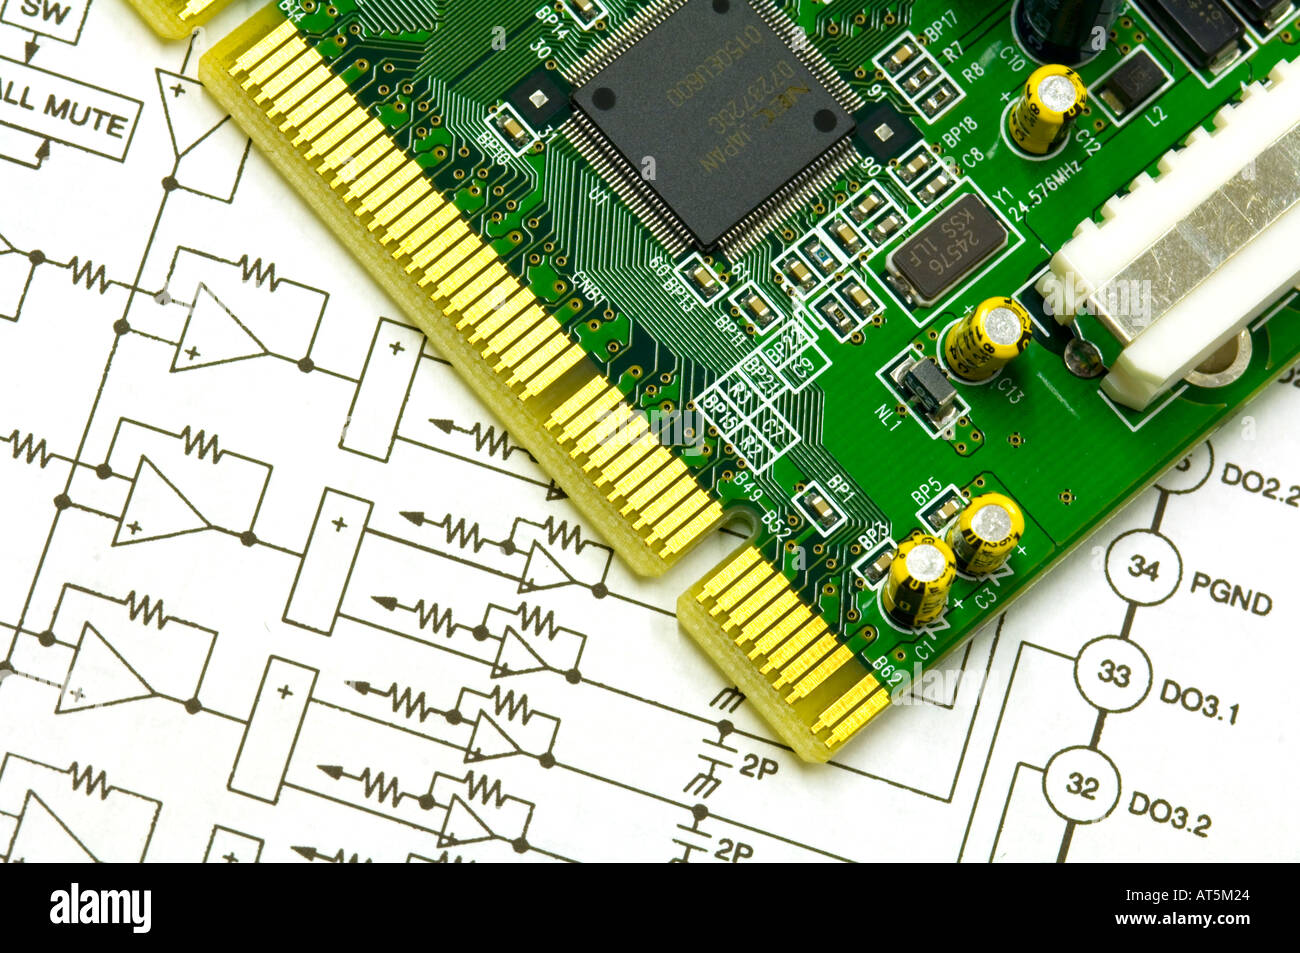 circuit board and schematic drawing of an electronic plan Stock ...